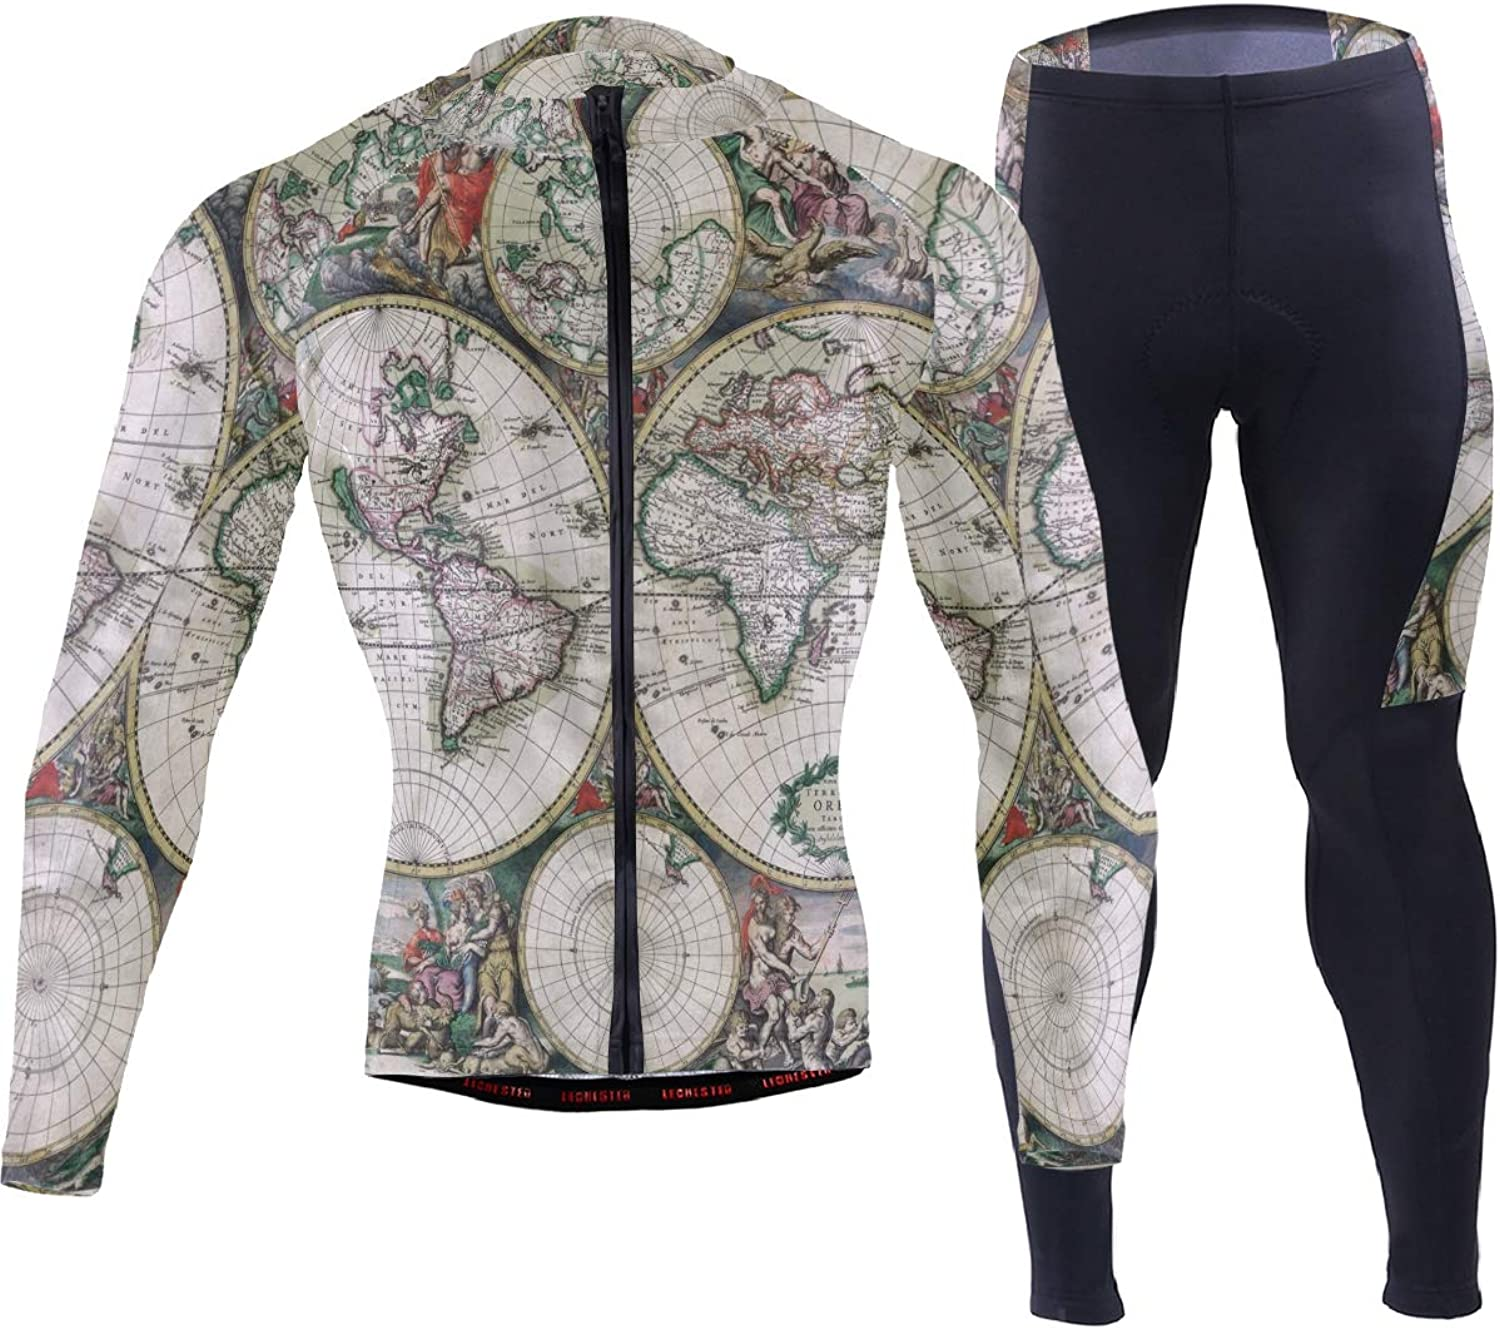 FAJRO Large Detailed Antique Political Map of The World Sportswear Suit Bike Outfit Set Breathable Quick Dry 3D Padded Pants